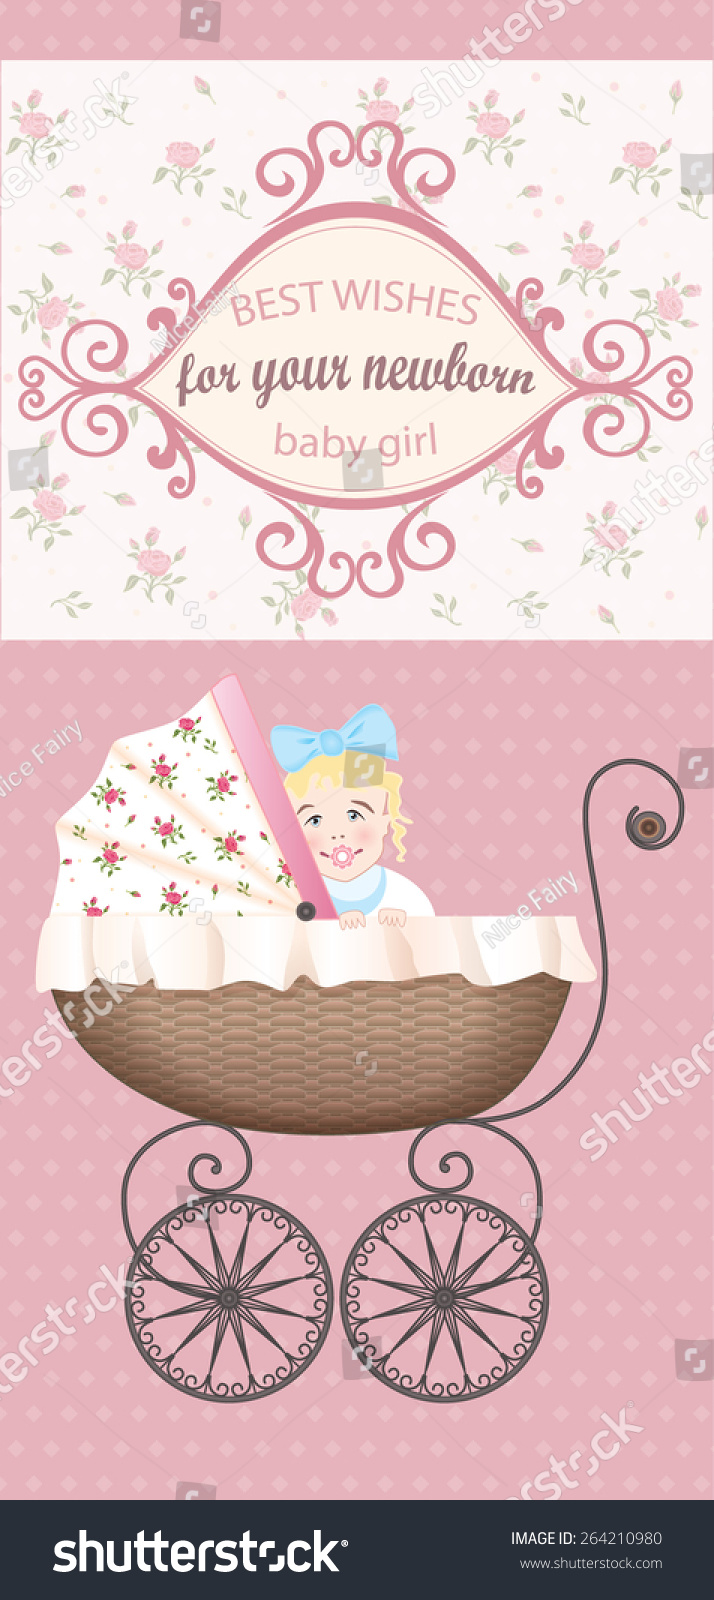 newborn baby girl congratulations vector vintage greeting card